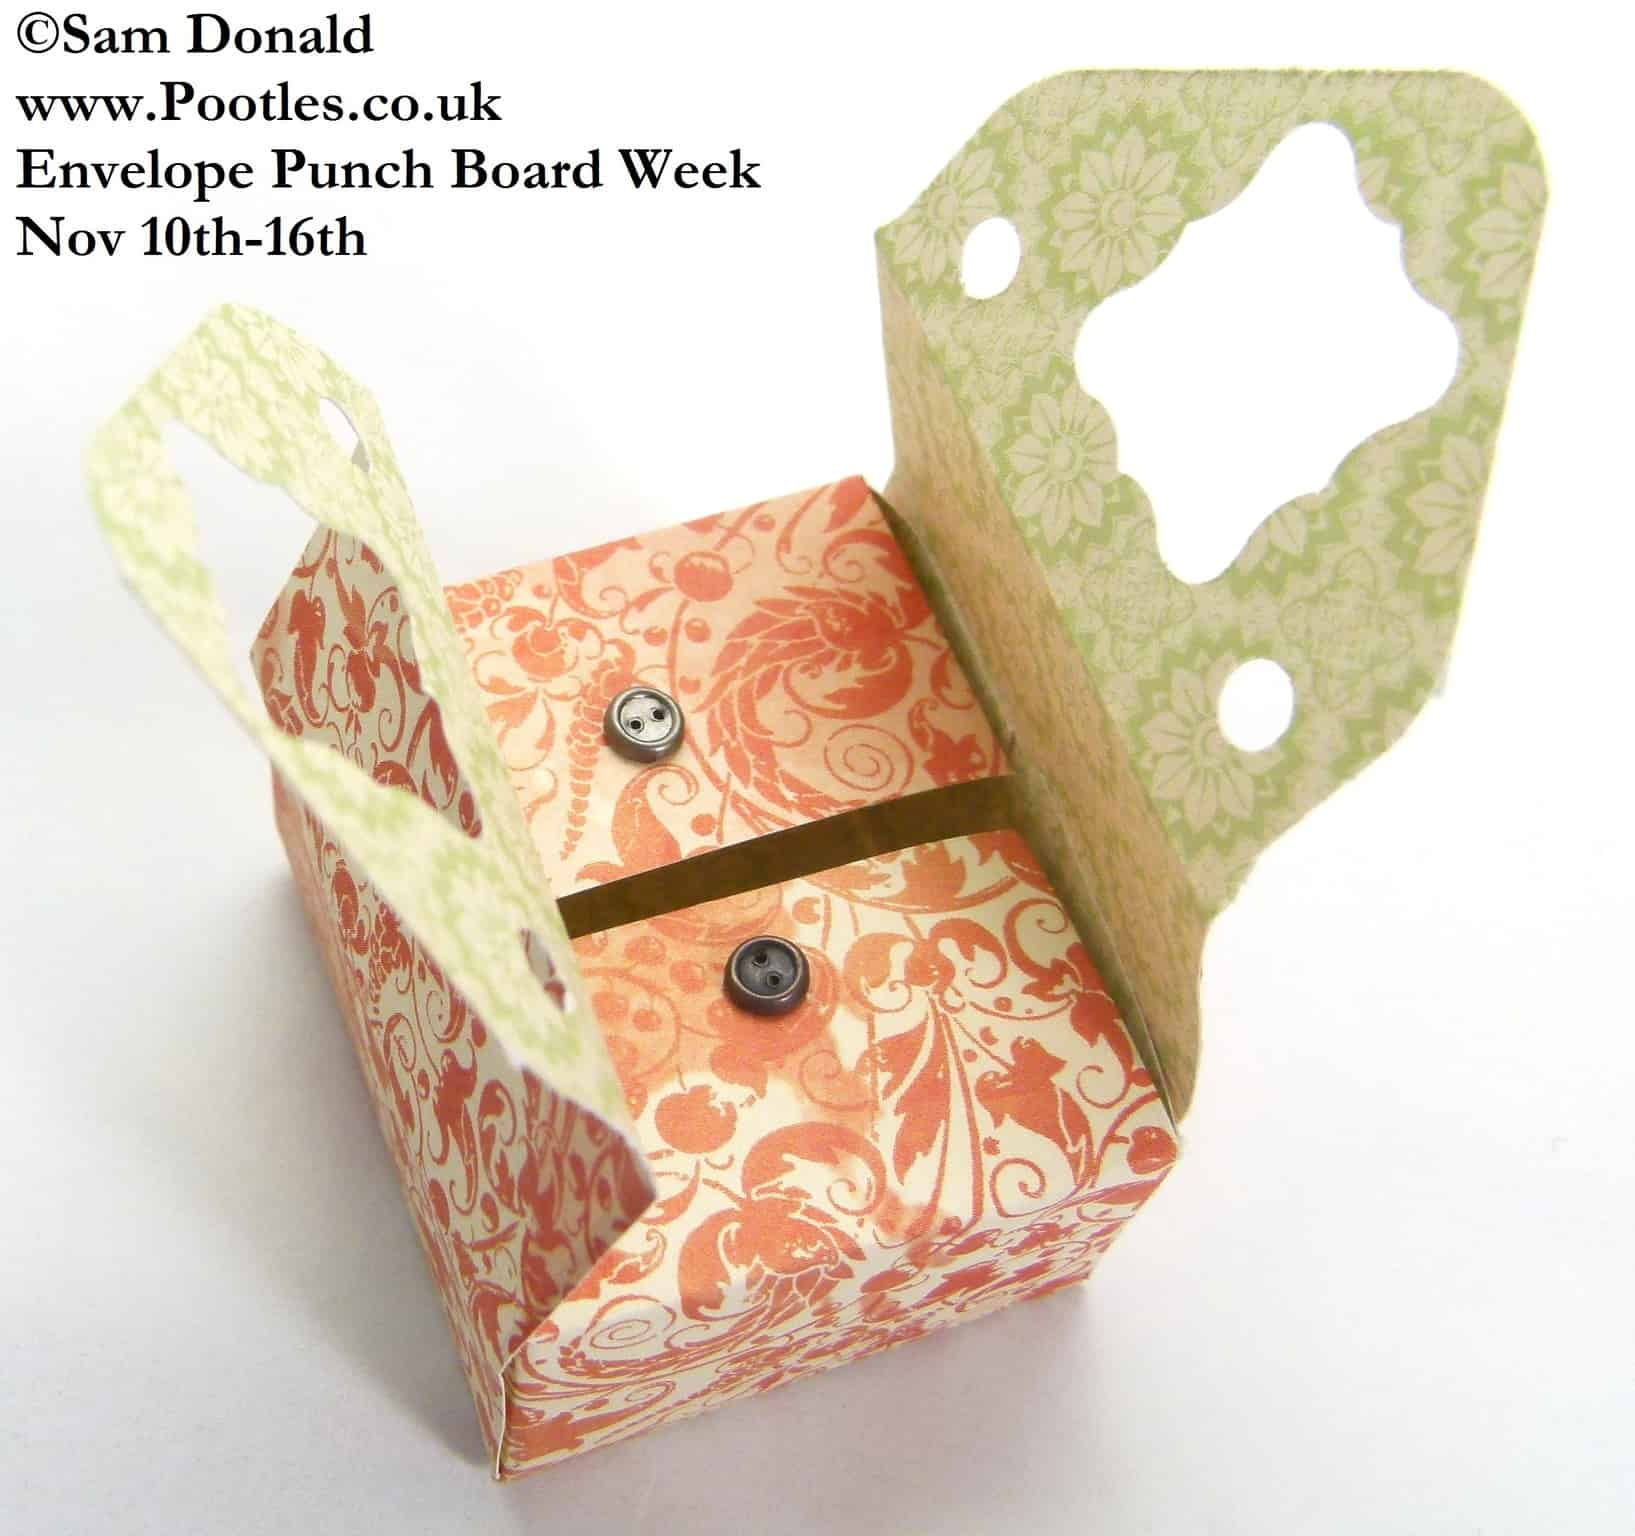 Envelope Punch Board Week – Sewing Style Box